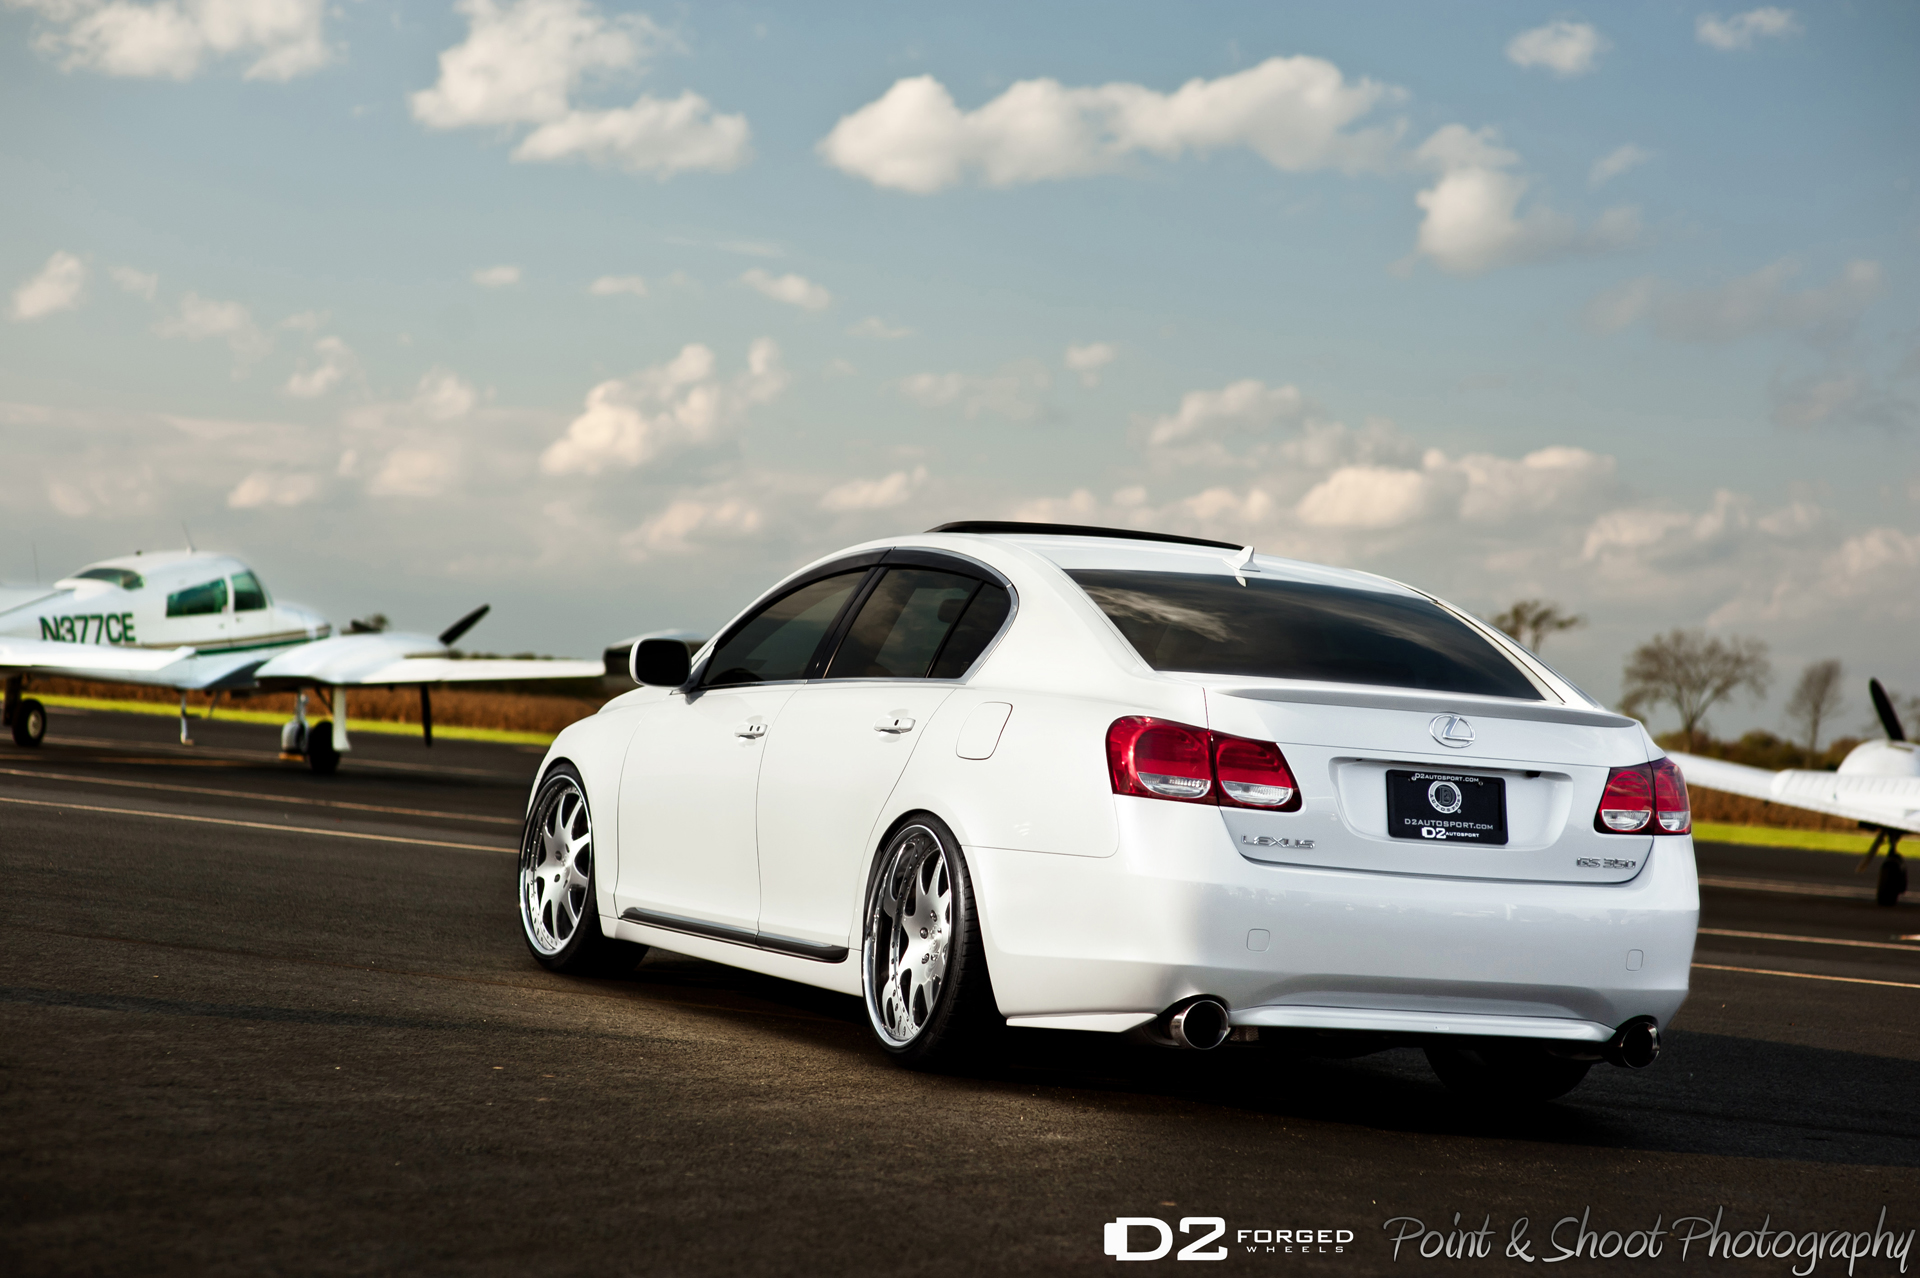 D2forged Lexus Gs350 Fms 07 Picture 73467